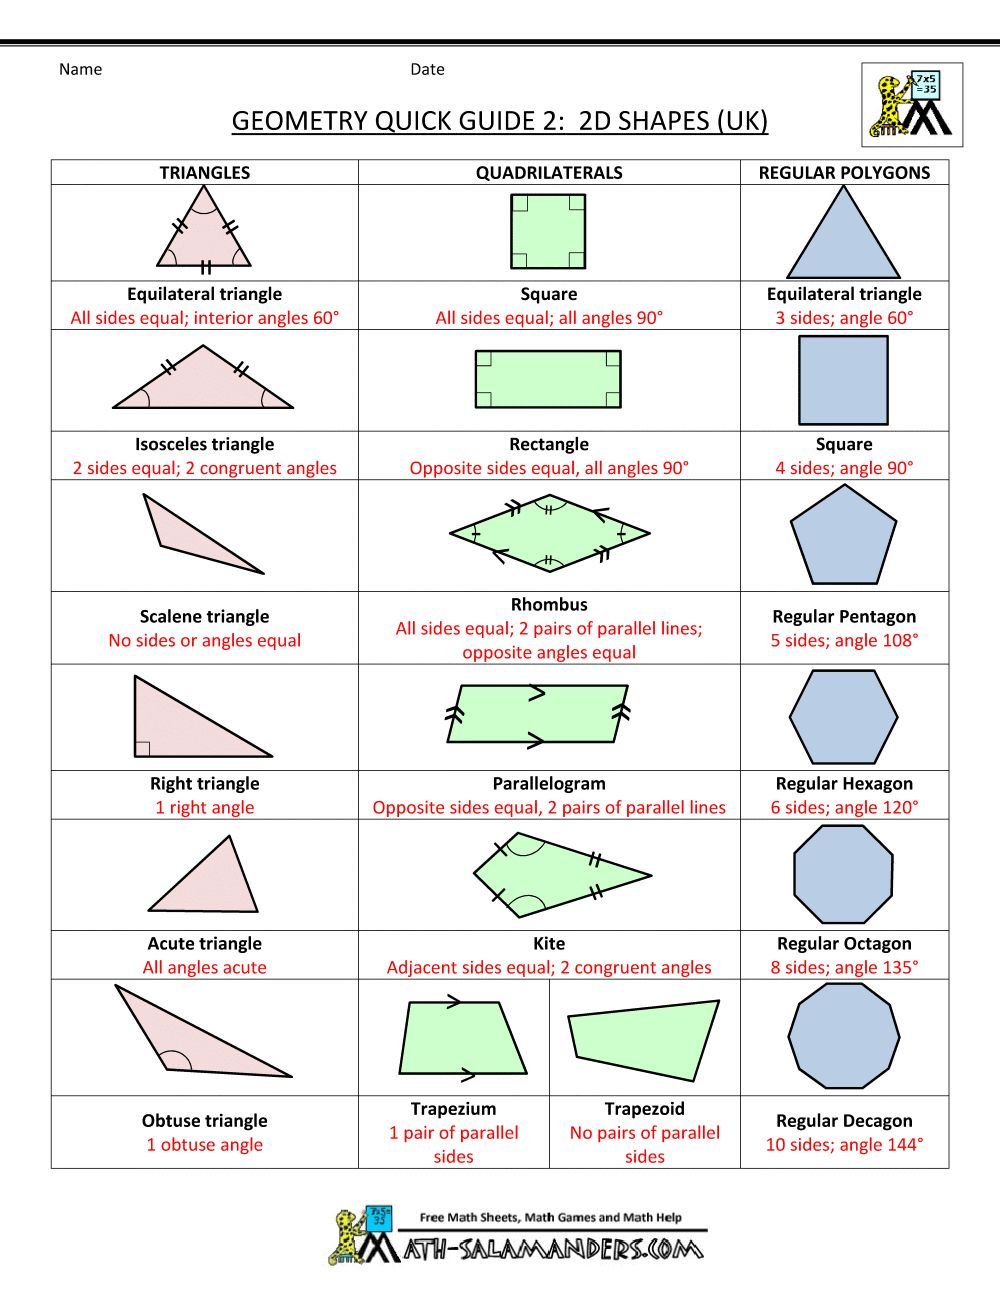 pin by doodledougdesign on geometry simple and pure daily math cheat sheet geometry formulas. Black Bedroom Furniture Sets. Home Design Ideas